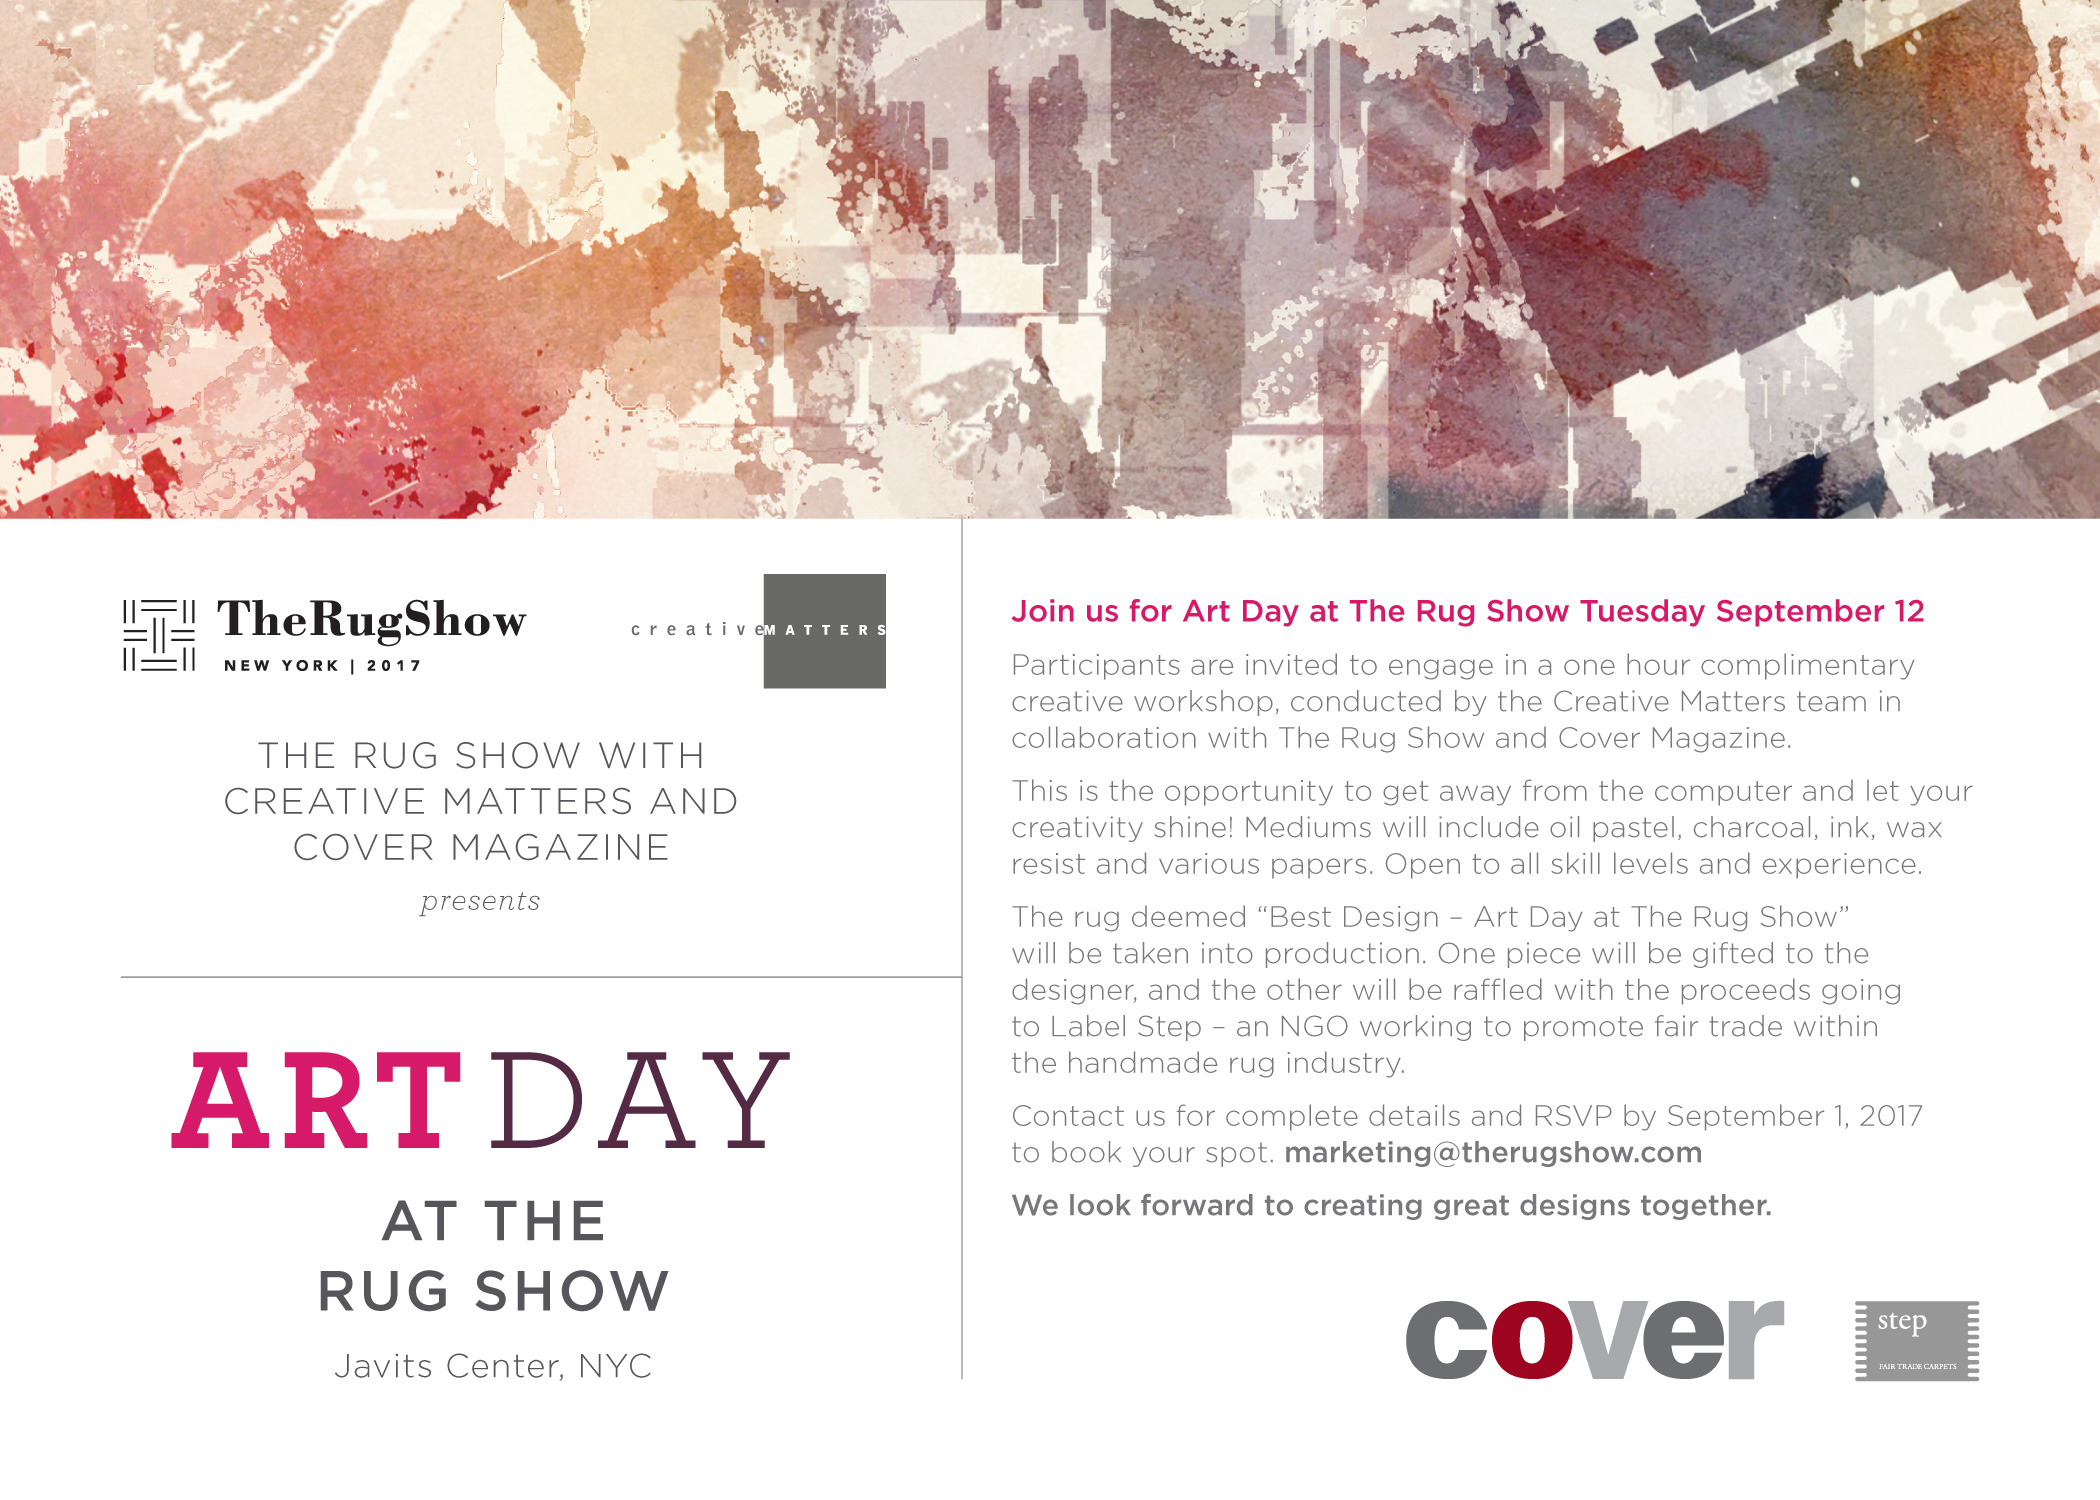 Creative Matters is hosting a special edition of their 'Art Day' during The Rug Show in conjunction with COVER Magazine and Label STEP. | Image courtesy of Creative Matters.